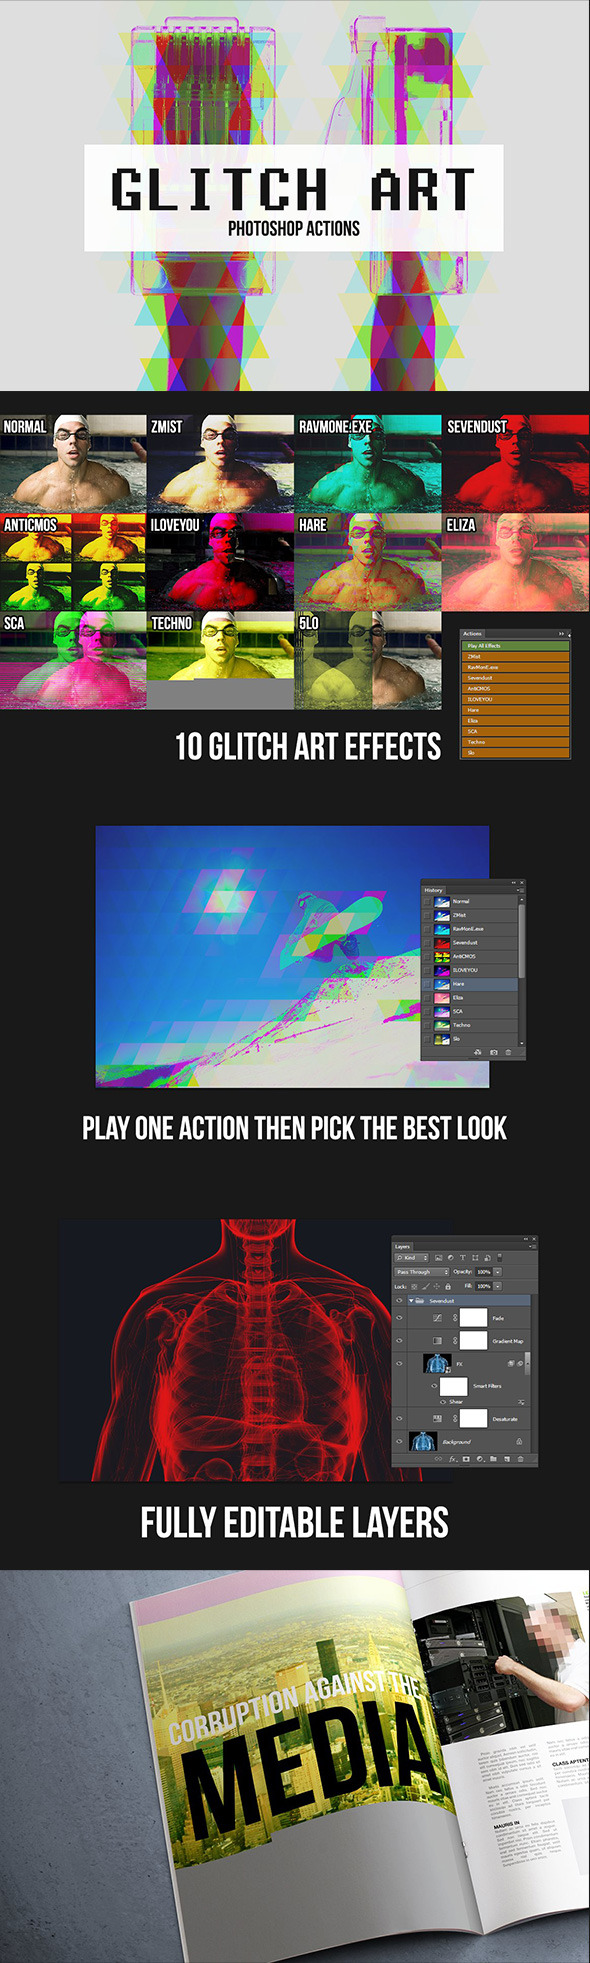 10 Glitch Art Effects - Photo Effects Actions